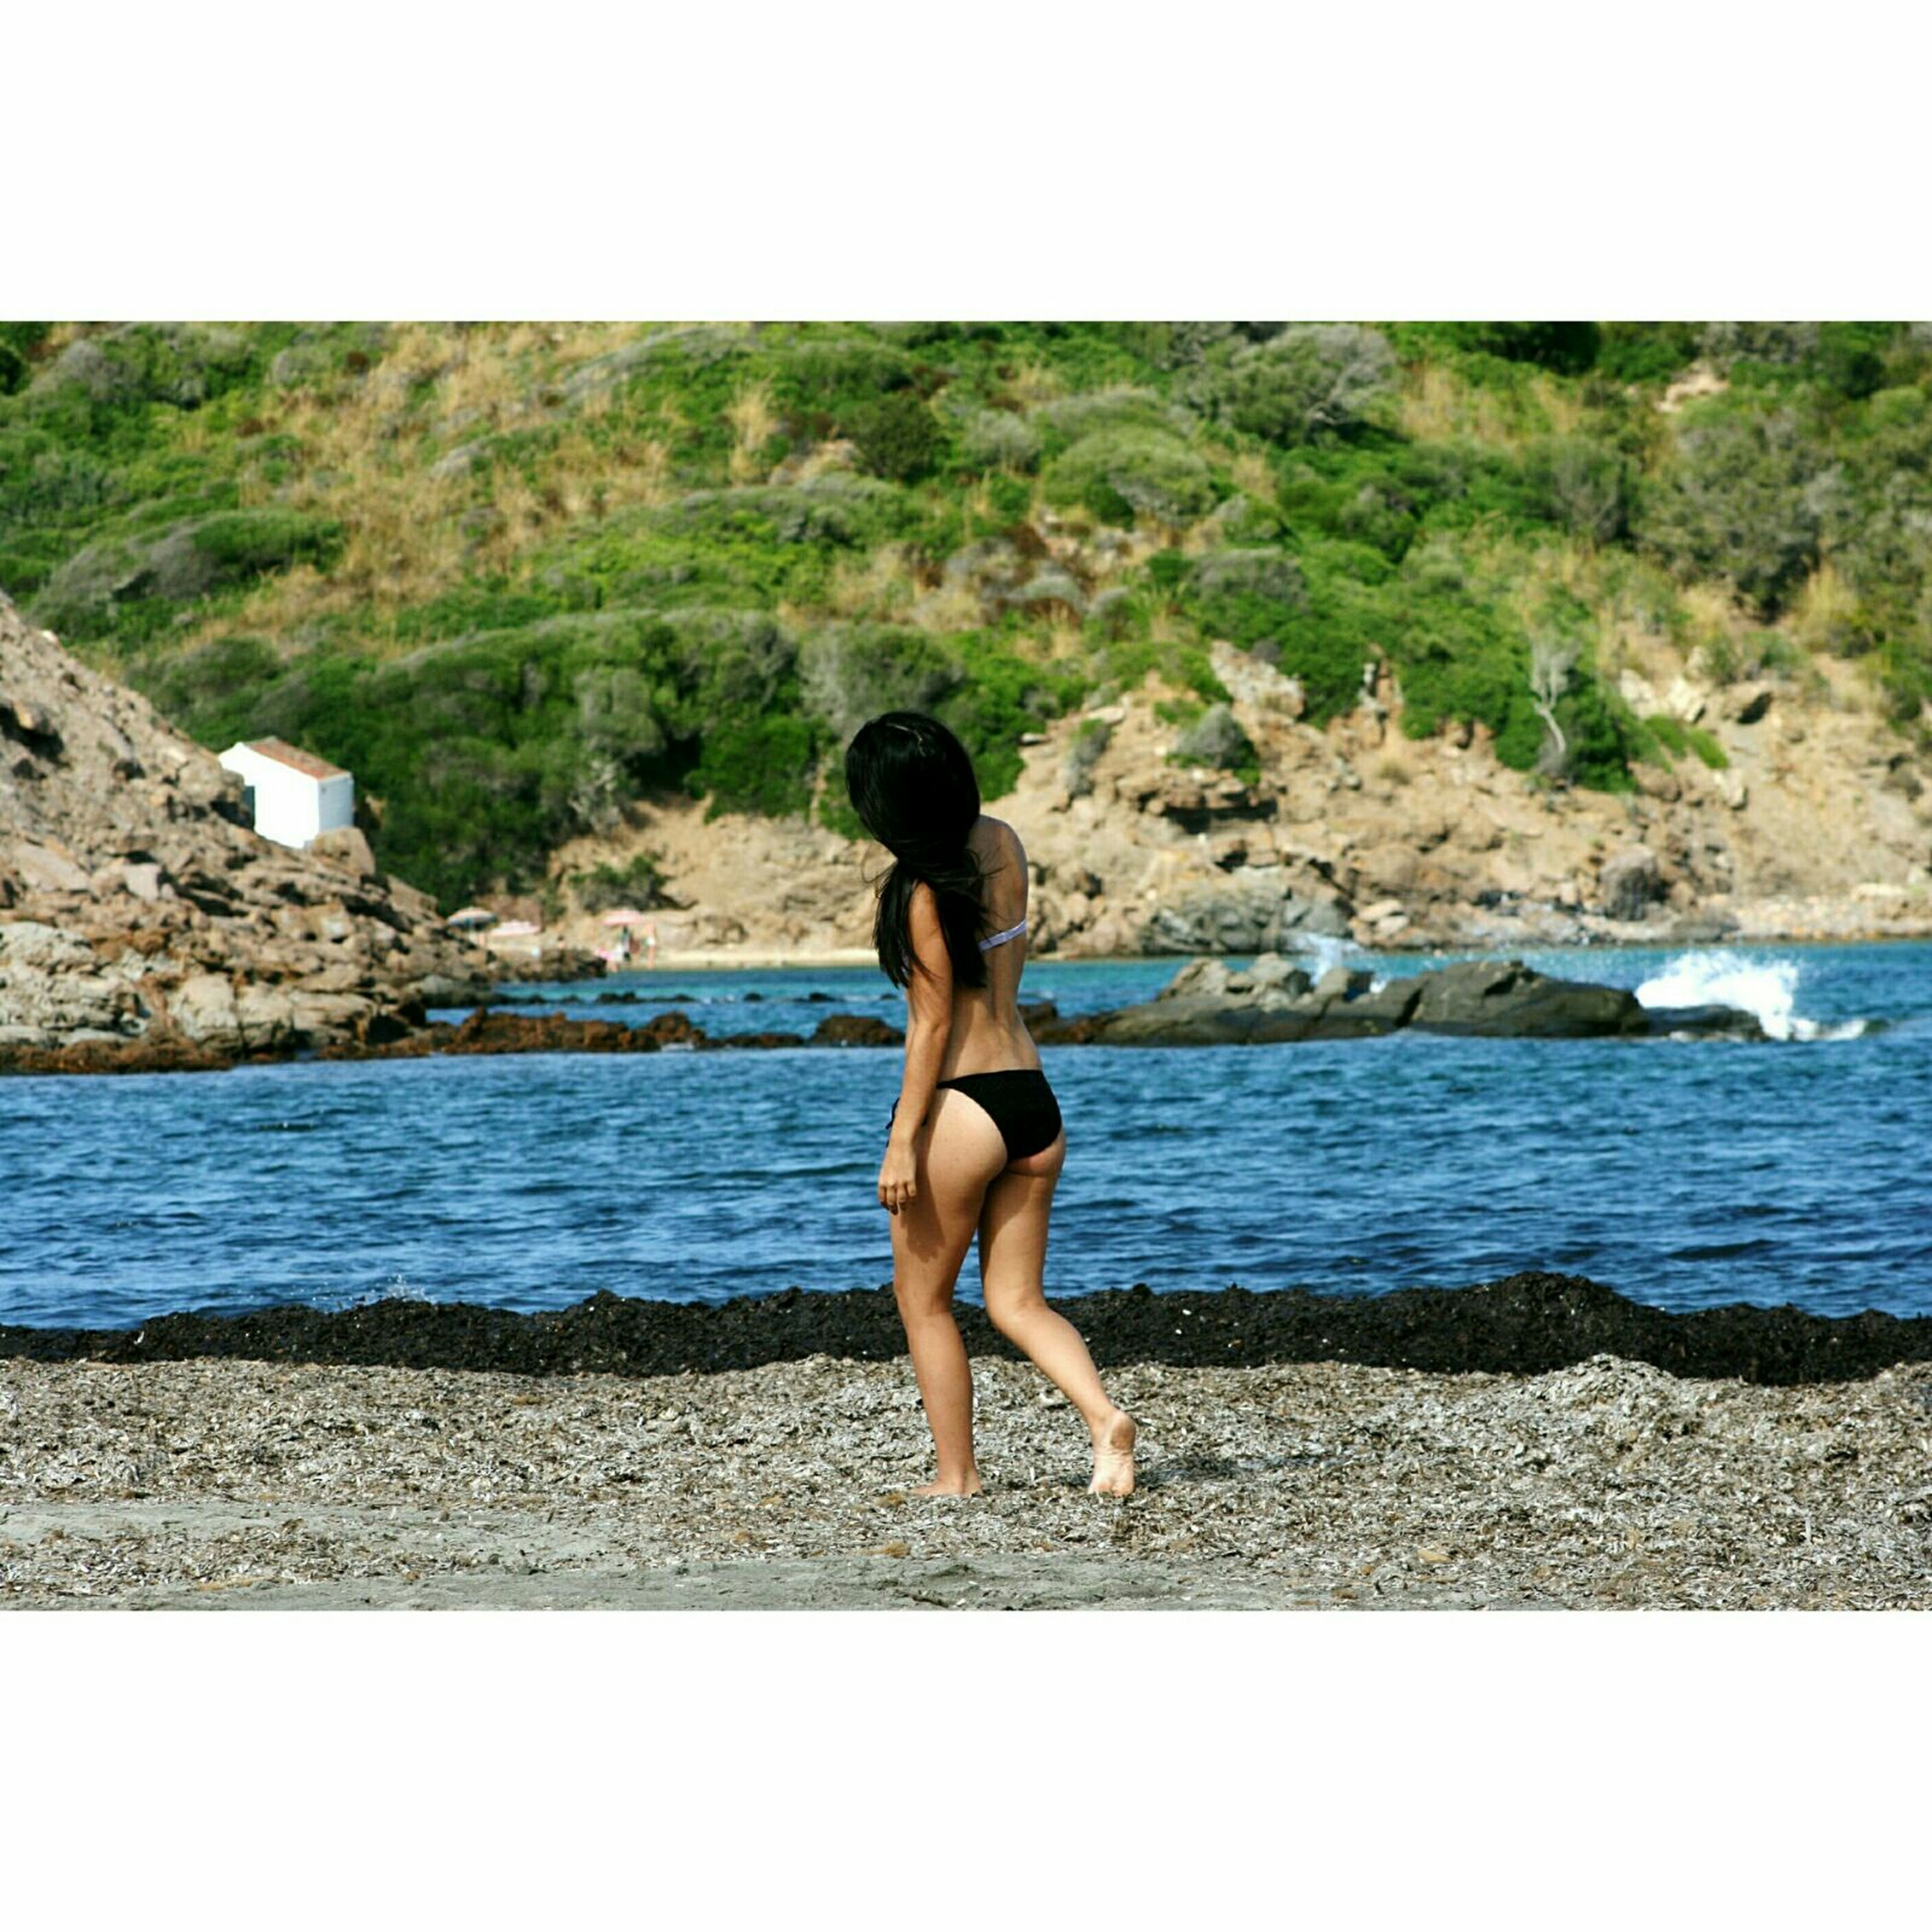 full length, water, lifestyles, transfer print, leisure activity, young adult, standing, auto post production filter, casual clothing, young women, tranquility, rear view, nature, sea, mountain, beauty in nature, person, tranquil scene